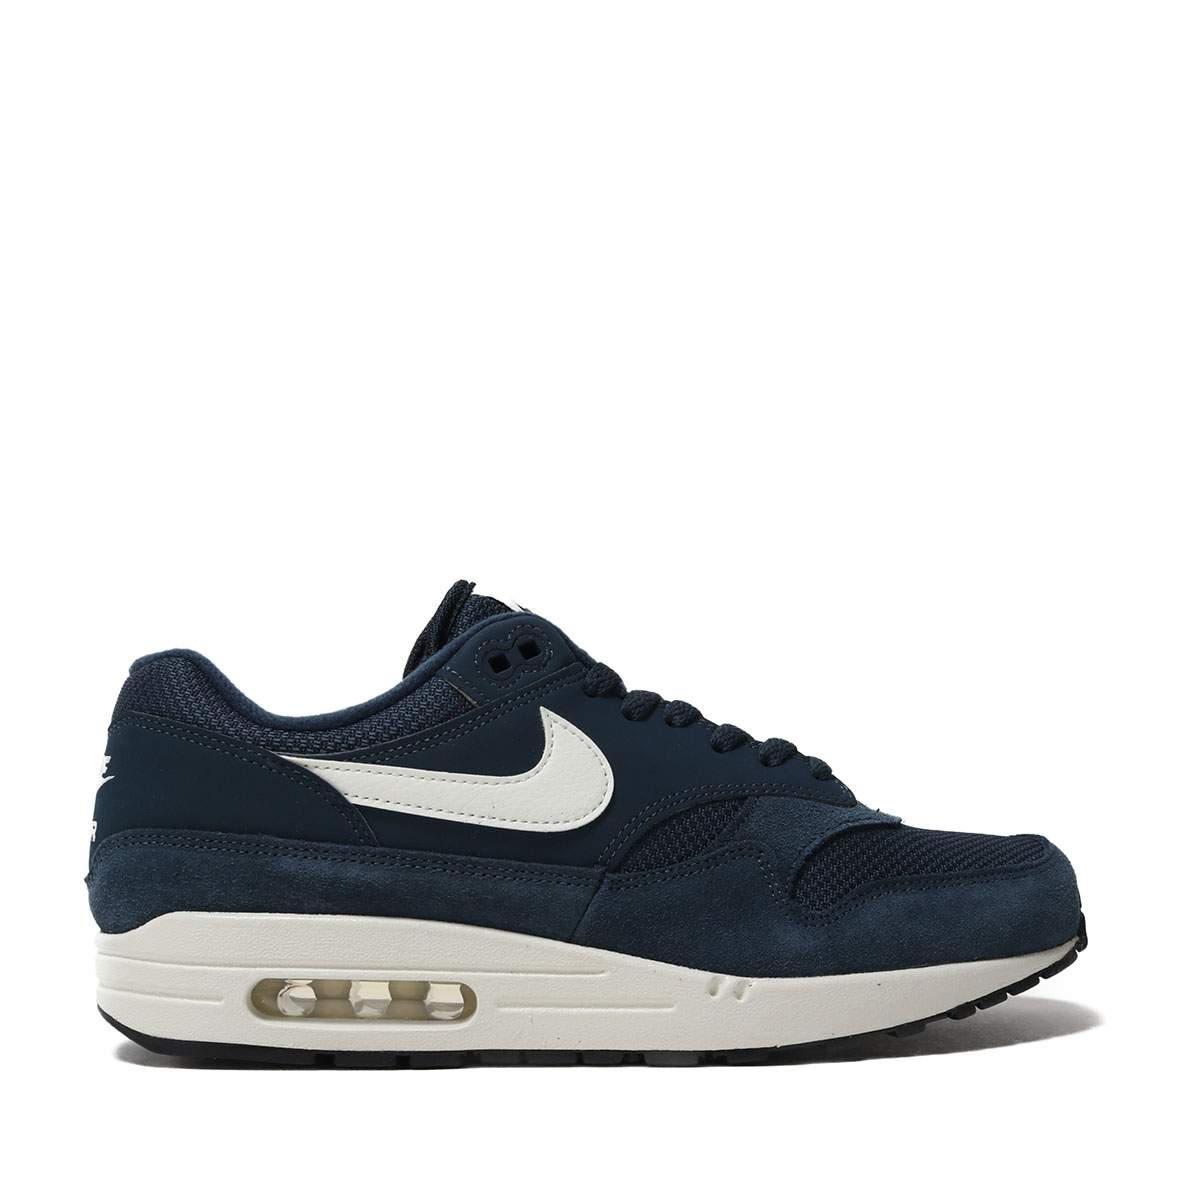 big sale 5d867 164e5 NIKE AIR MAX 1 (ARMORY NAVY SAIL-SAIL-BLACK) (Kie ...